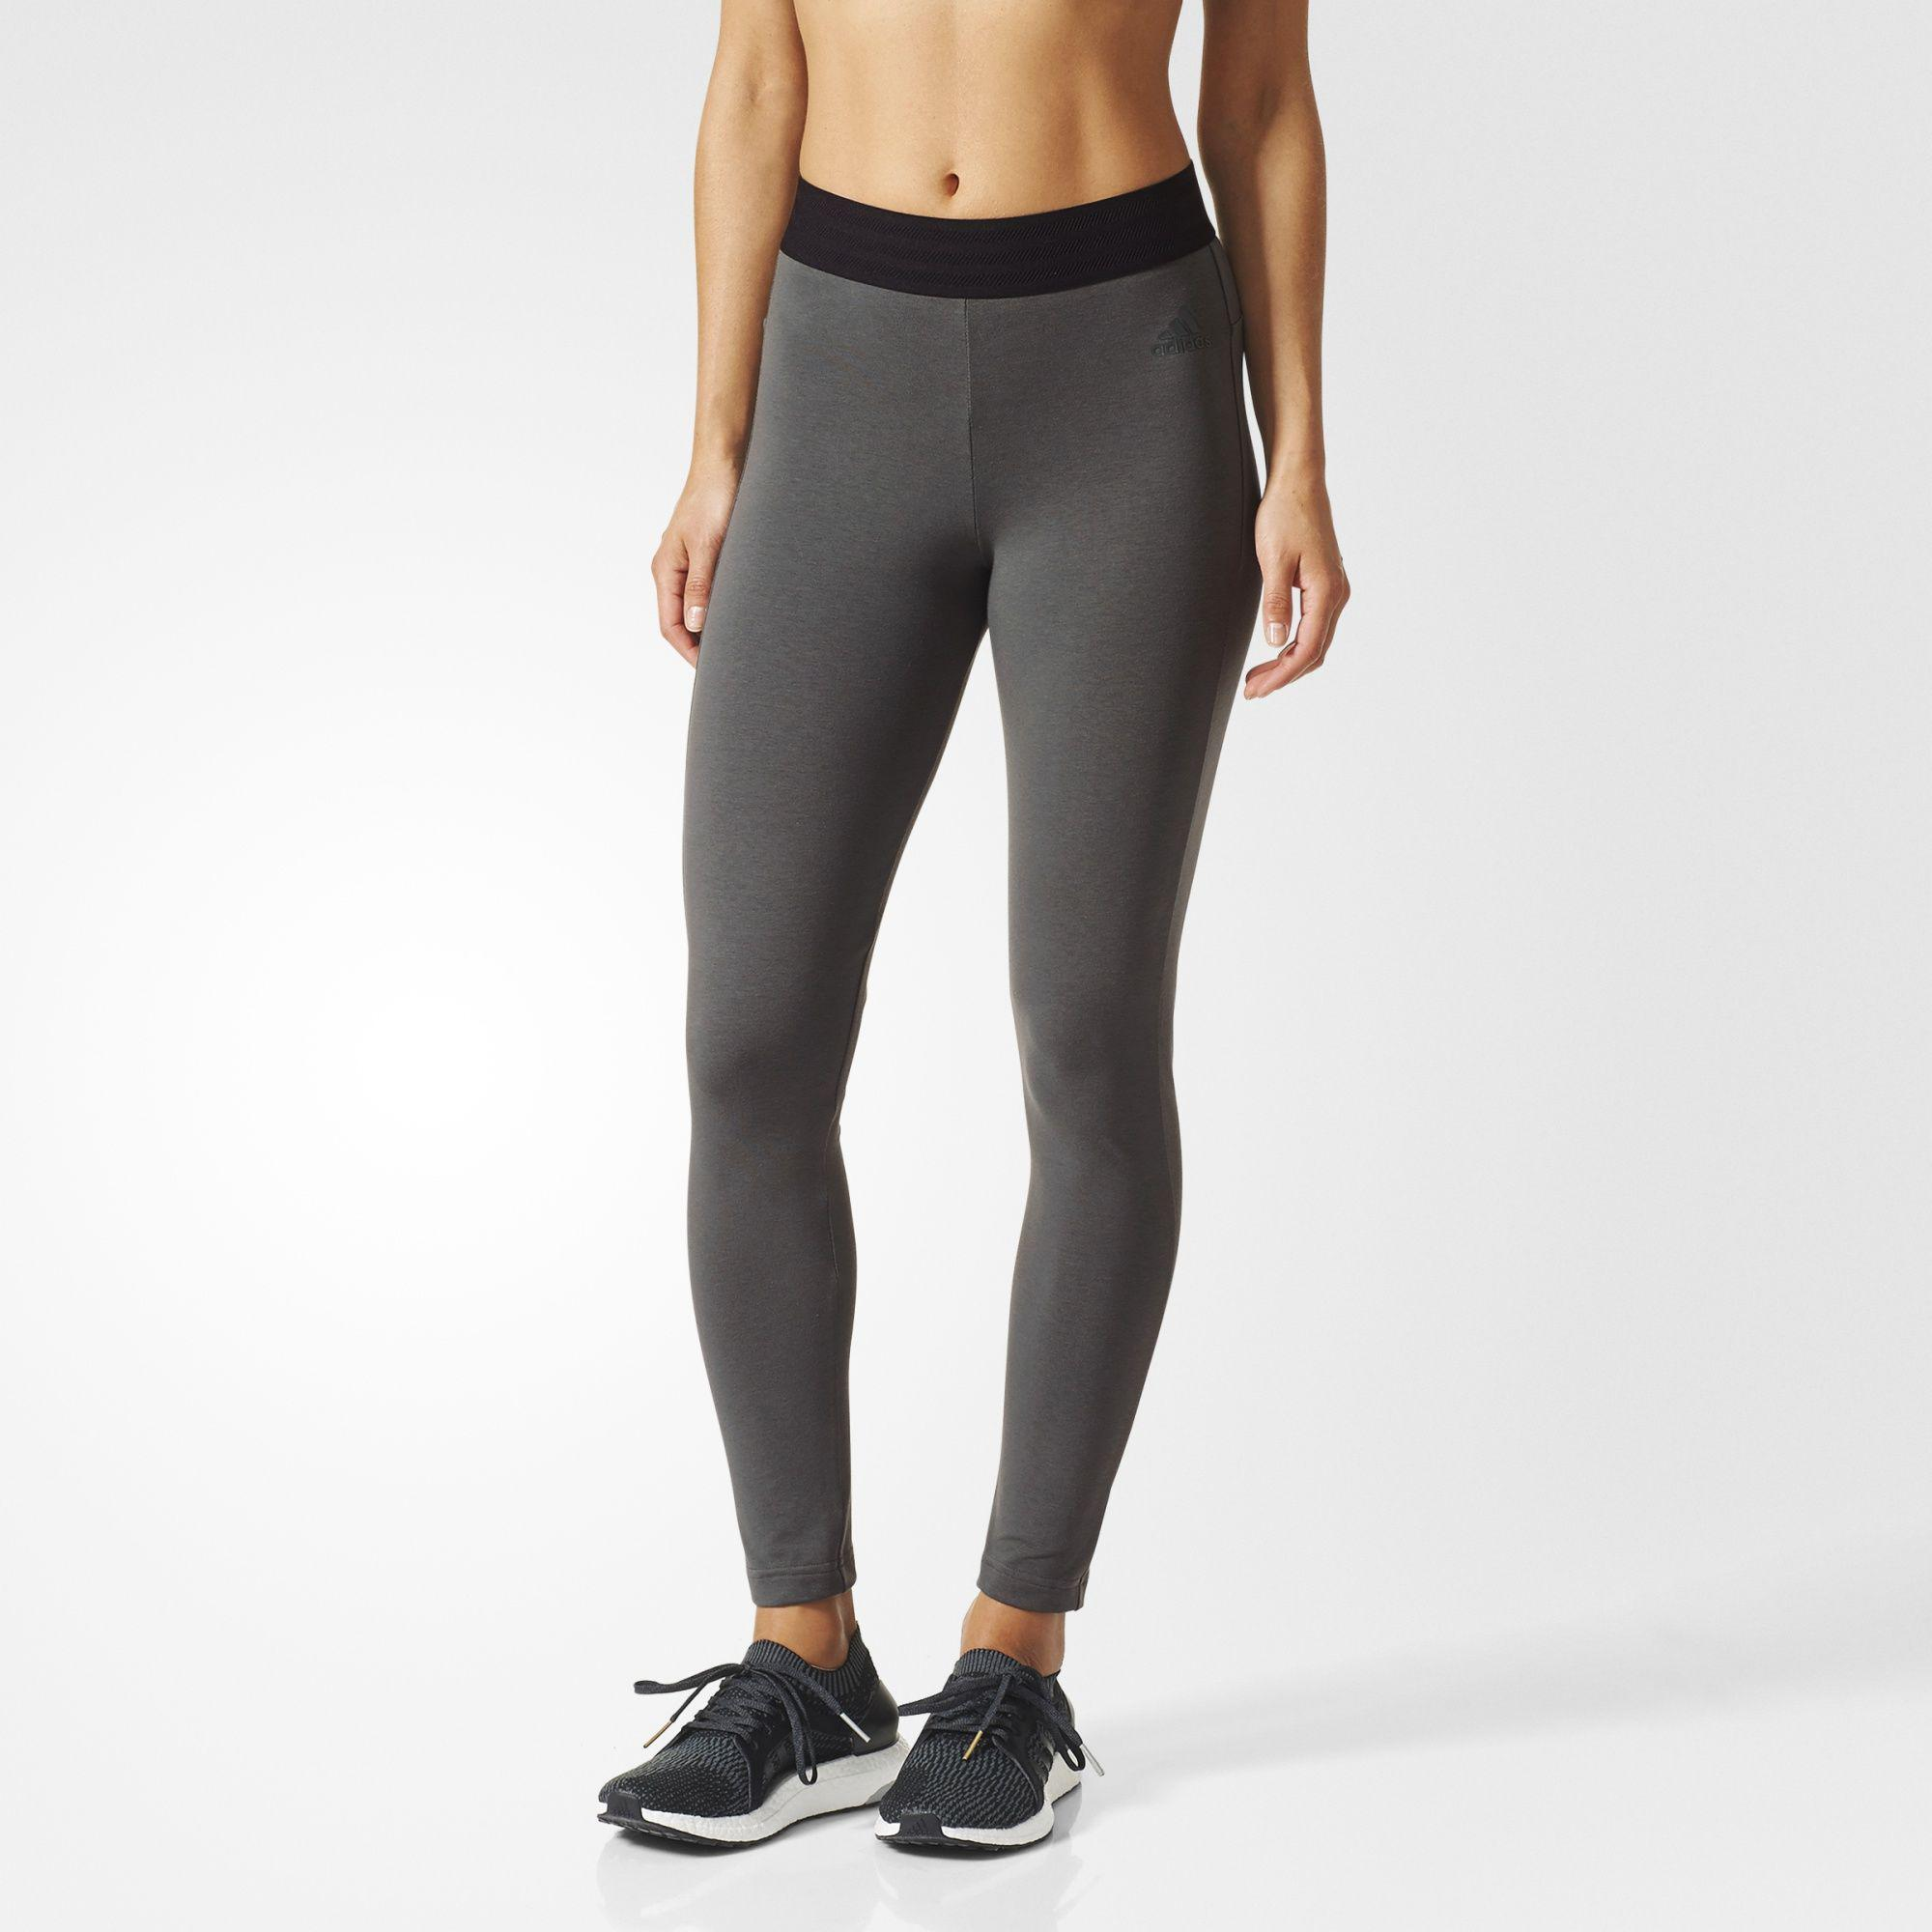 d0d320d2c536c Adidas Womens Sport ID Tights - Grey - Tennisnuts.com